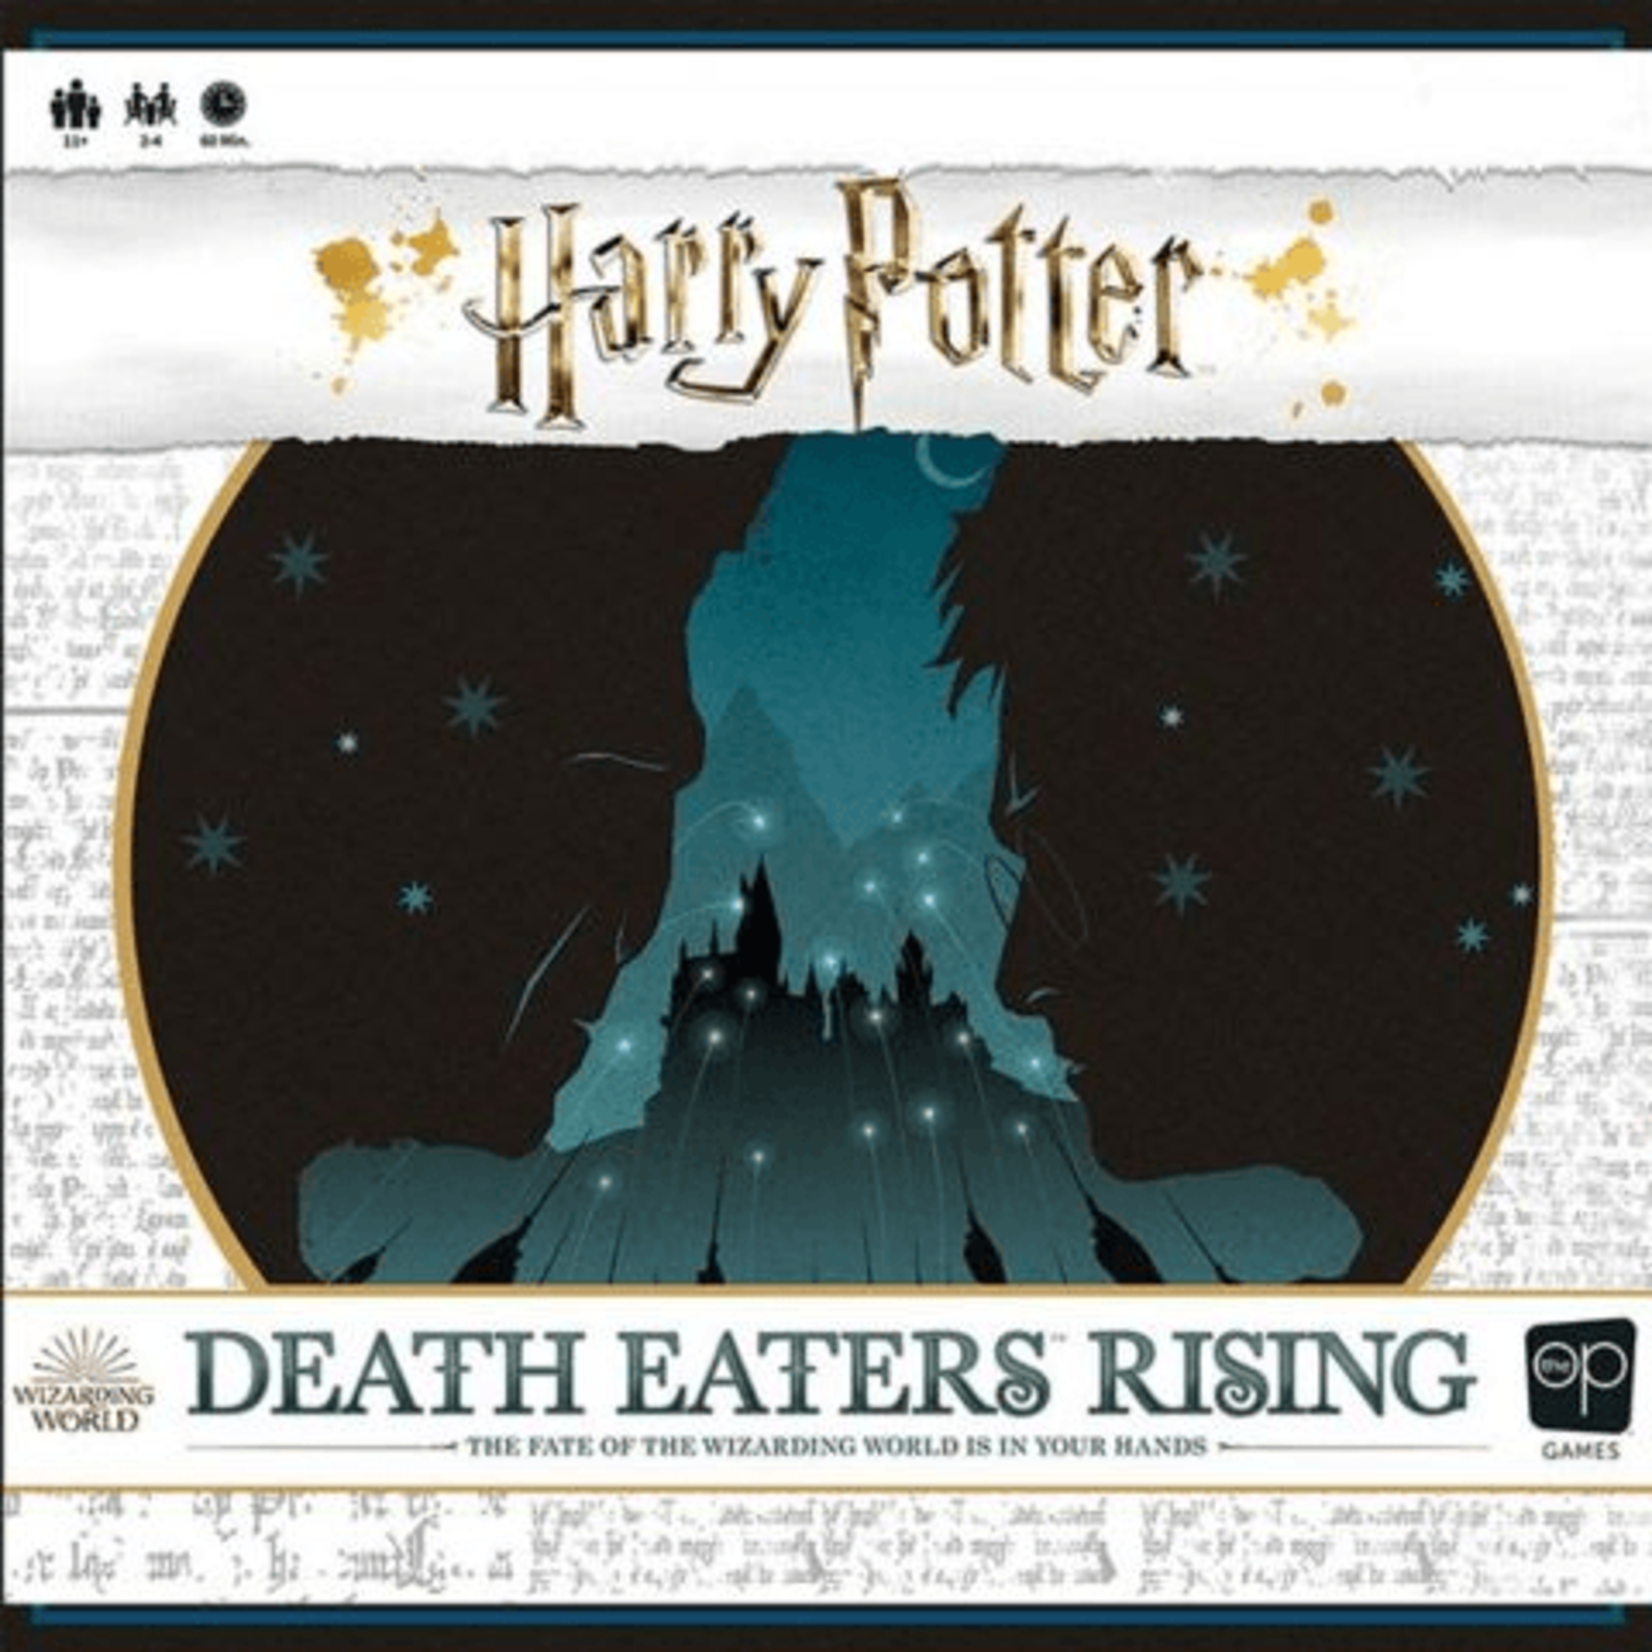 The Op Harry Potter Death Eaters Rising